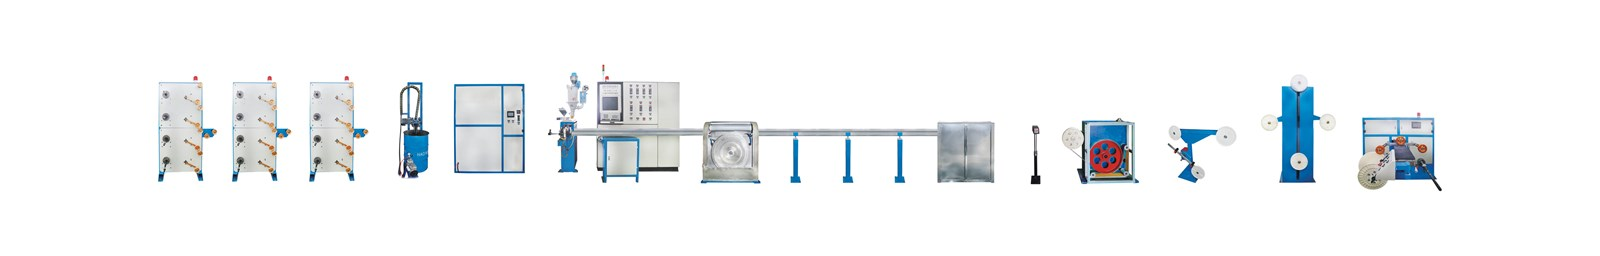 Loose Tube Production Line for Outdoor Optic Cable